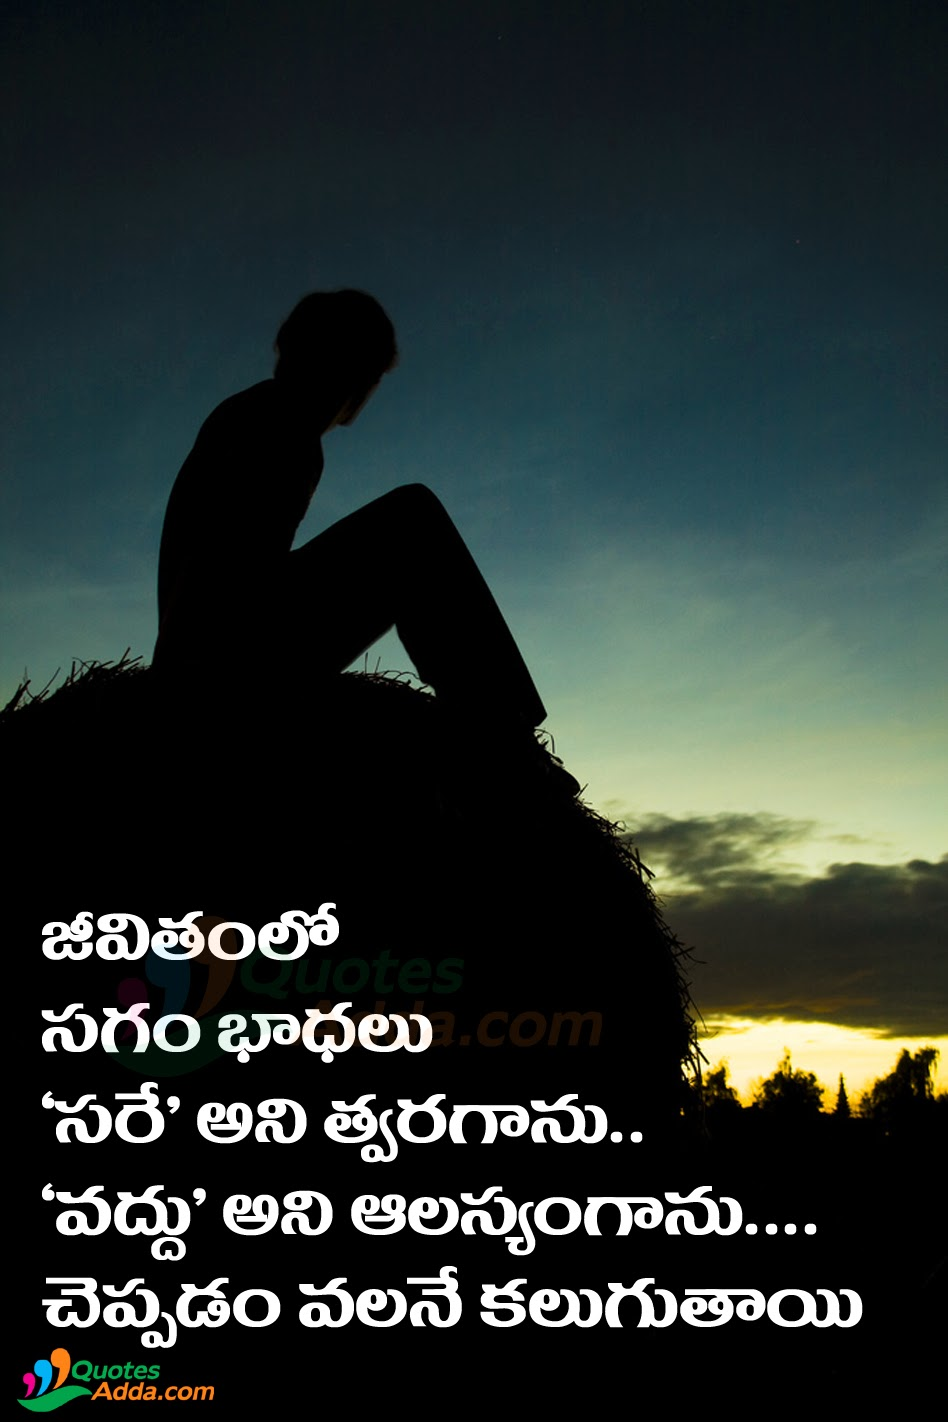 Free Download Sad Lonely Quotes About Life In Hindi Quotes On